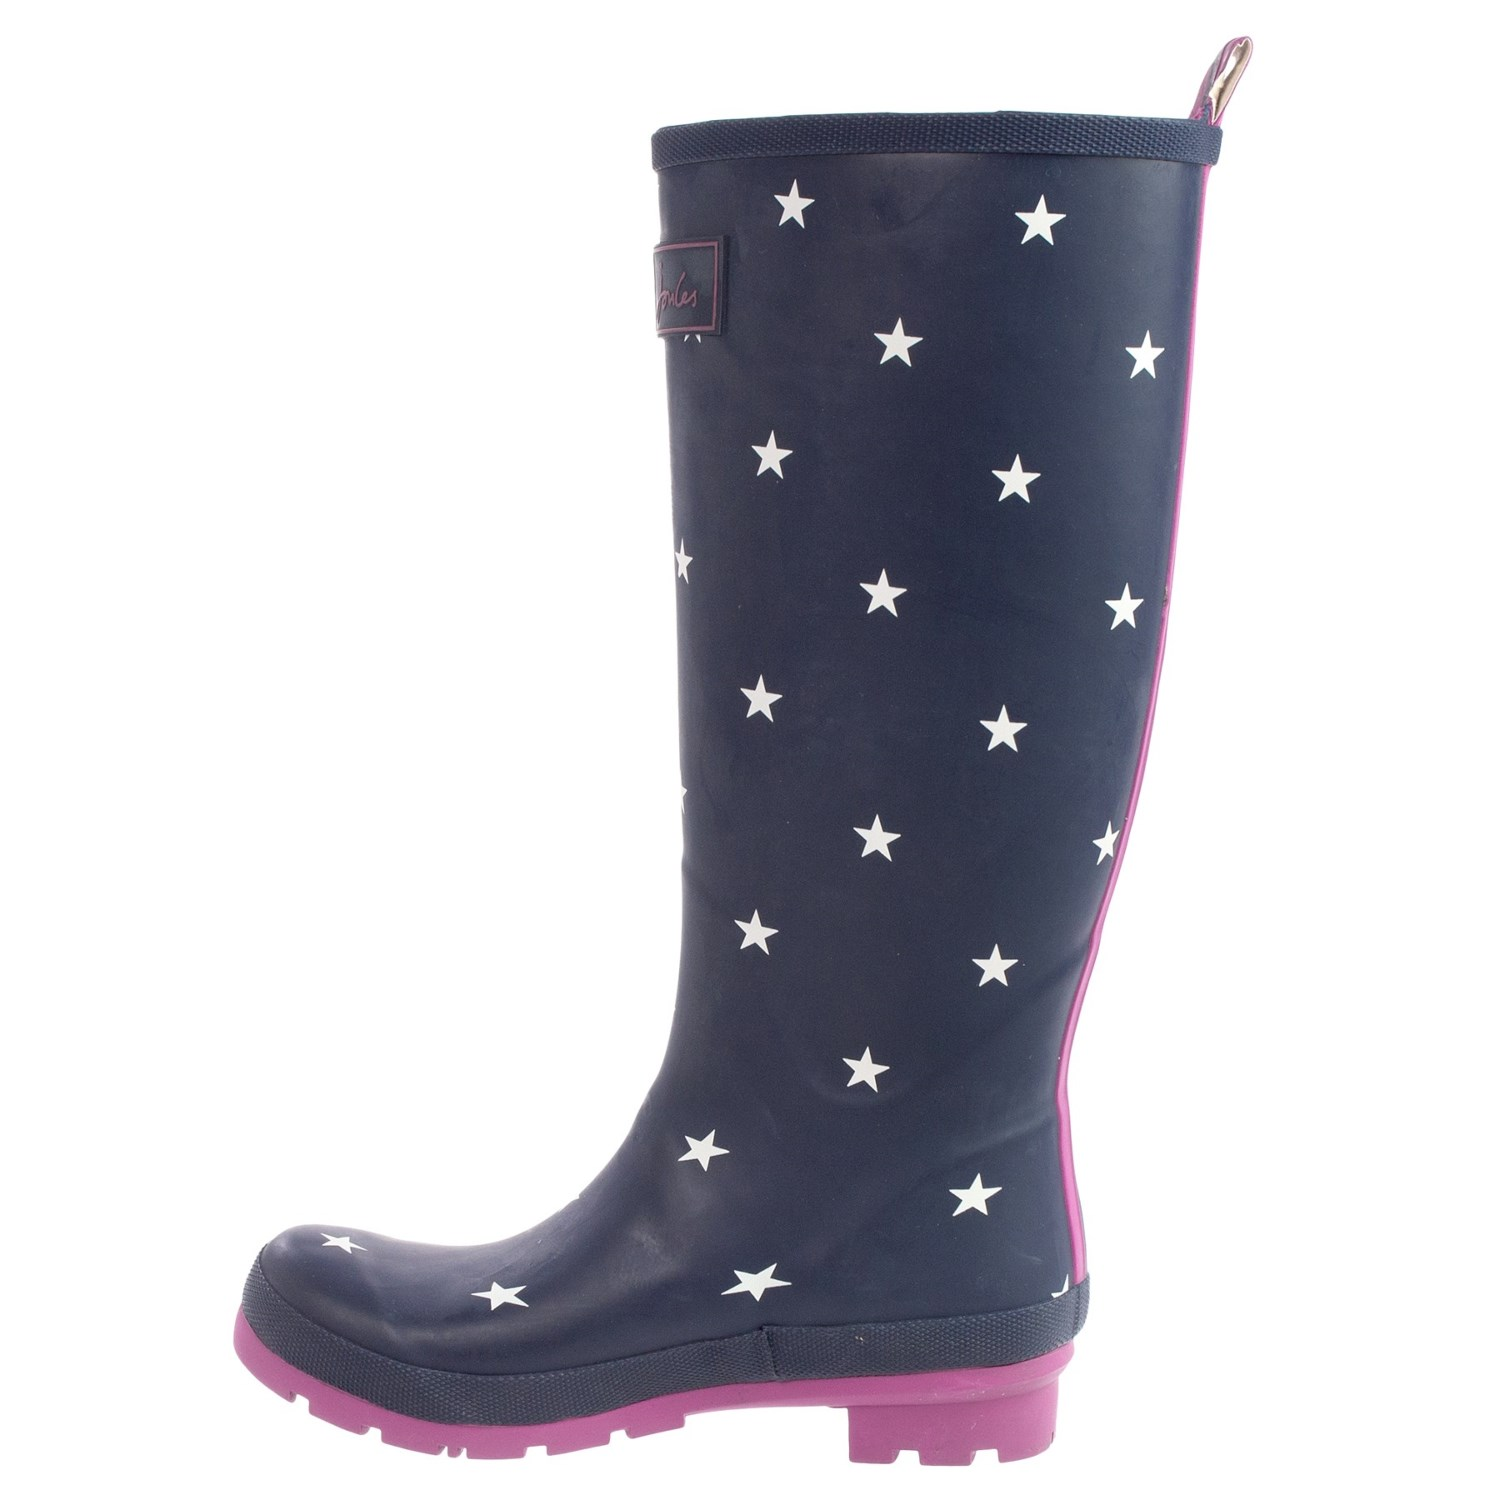 Womens Patterned Rain Boots - Boot Hto